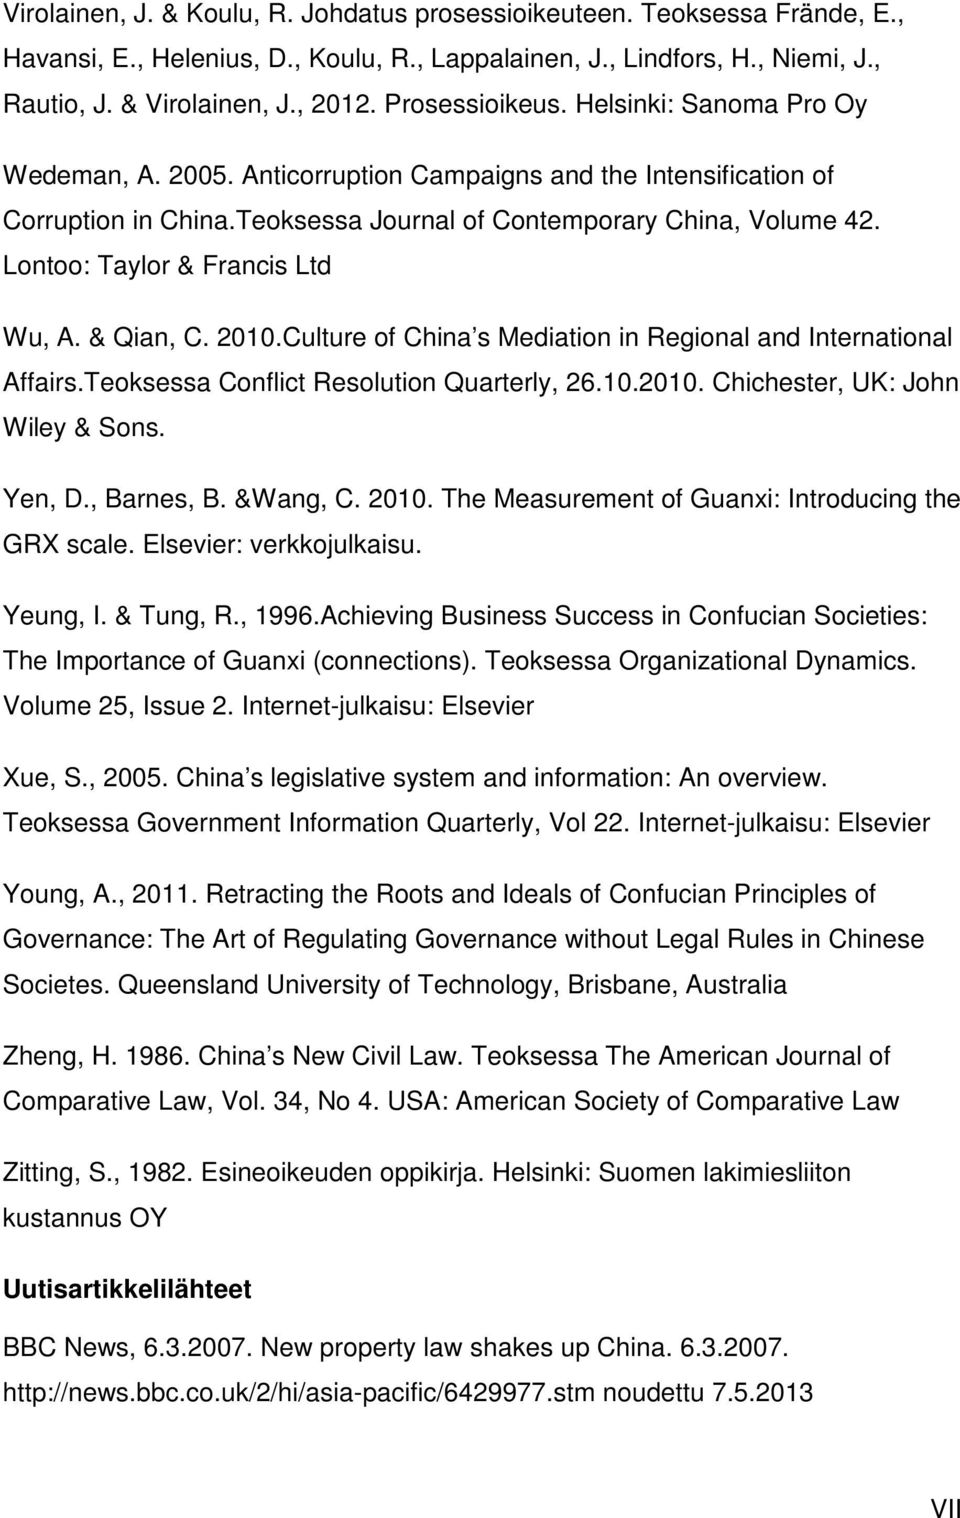 Lontoo: Taylor & Francis Ltd Wu, A. & Qian, C. 2010.Culture of China s Mediation in Regional and International Affairs.Teoksessa Conflict Resolution Quarterly, 26.10.2010. Chichester, UK: John Wiley & Sons.